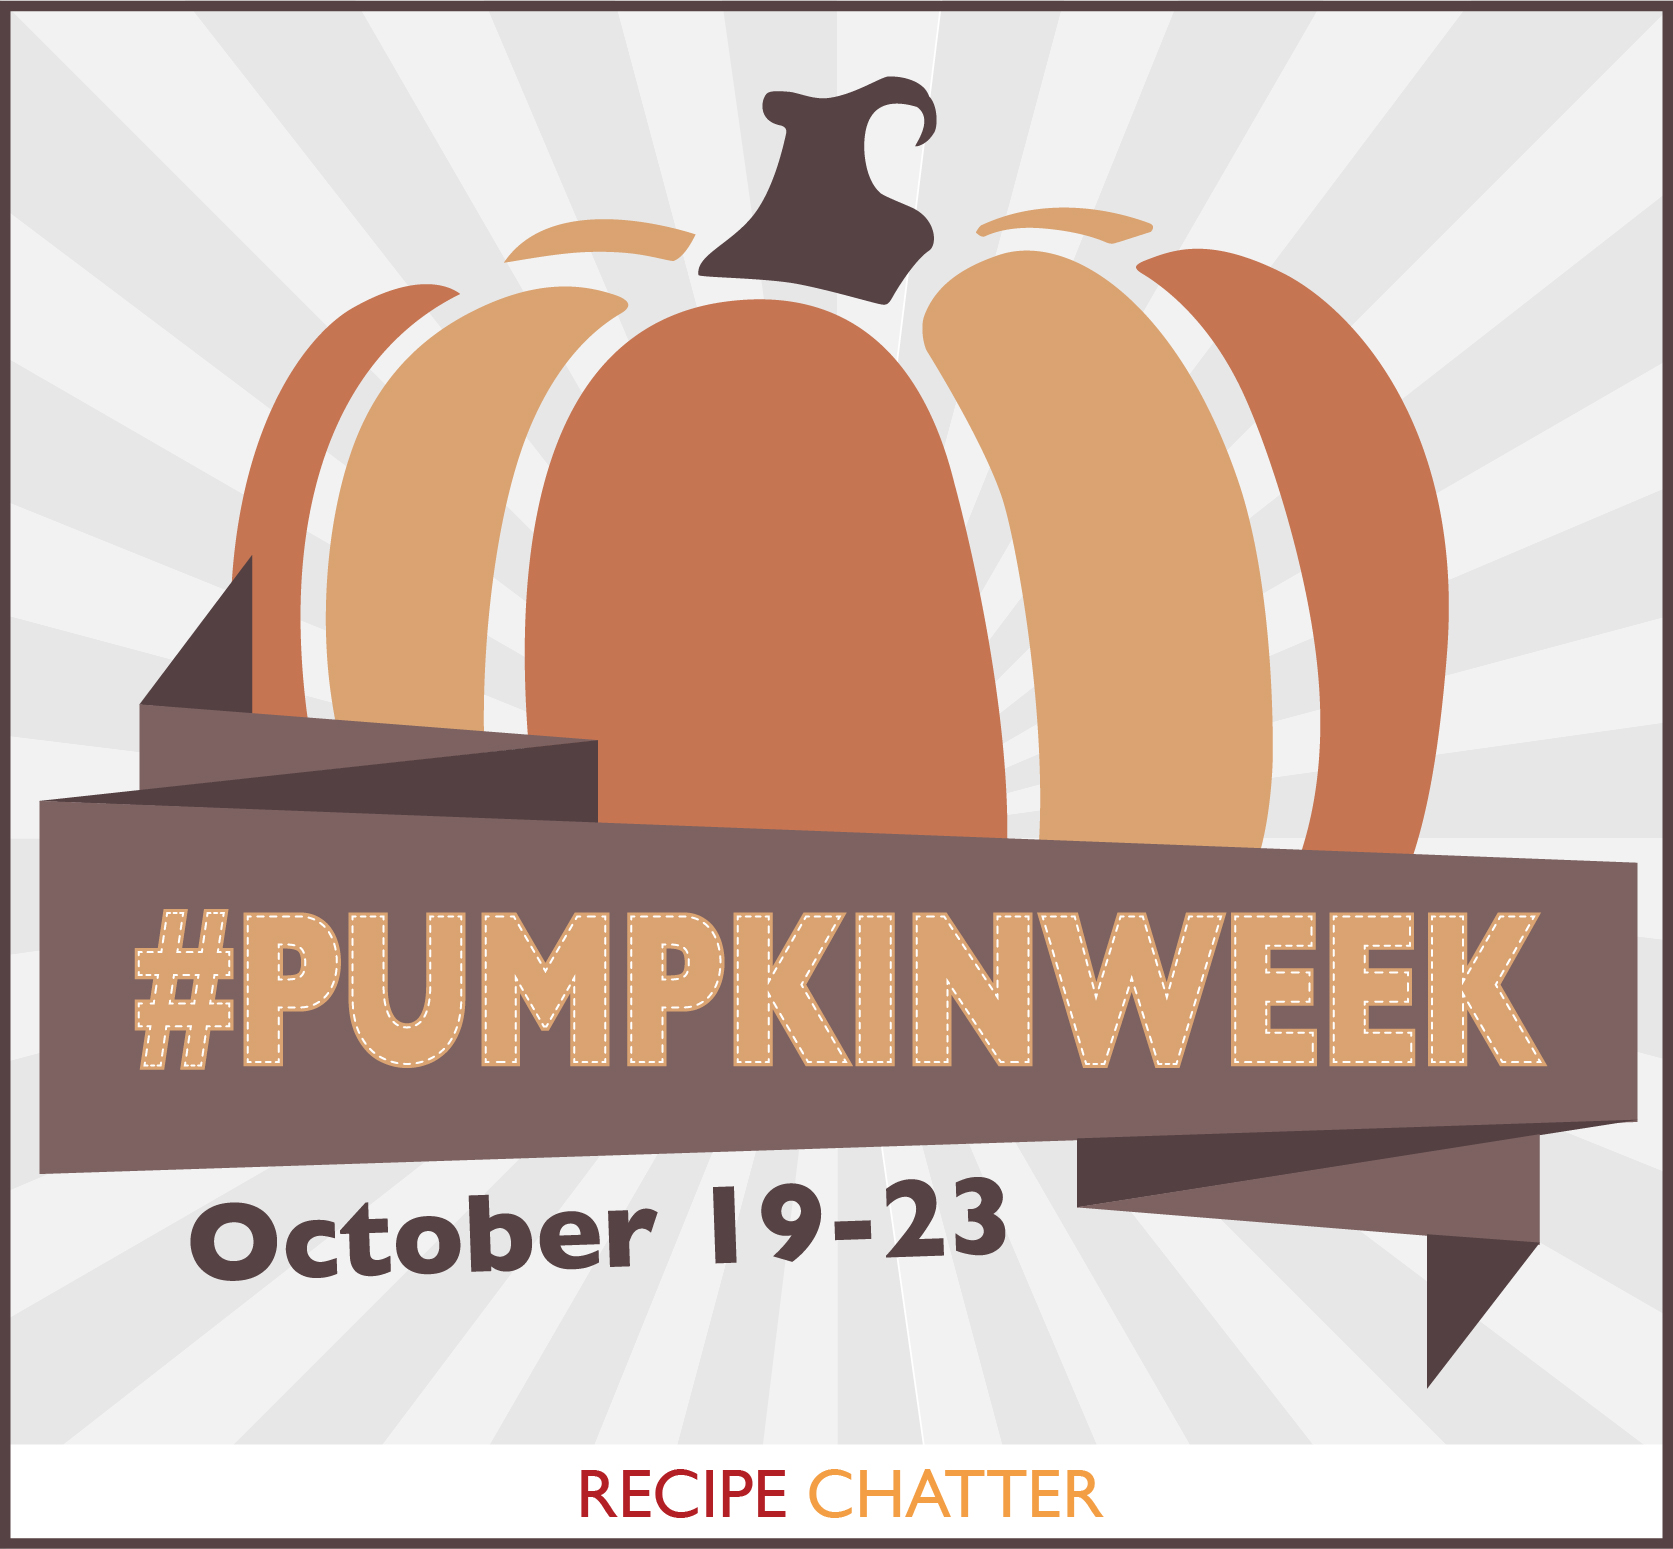 OfficialPumpkinWeekLogo